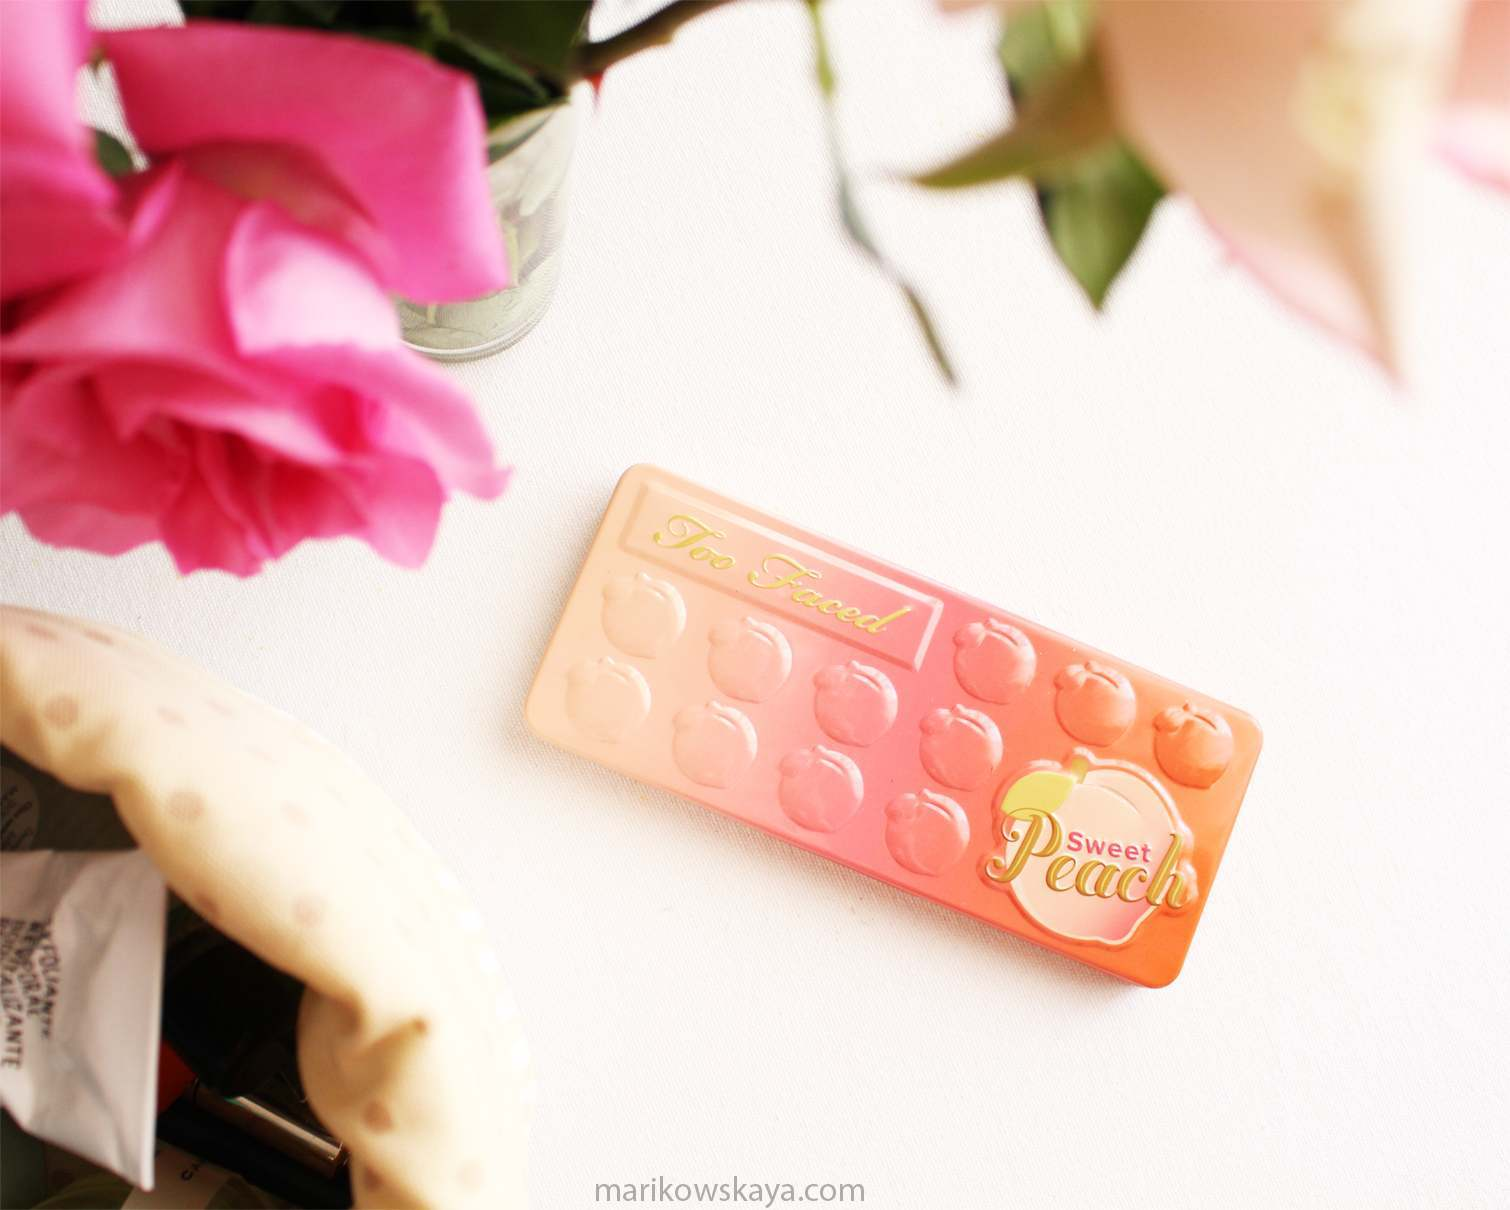 favoritos mayo - sweet peach too faced